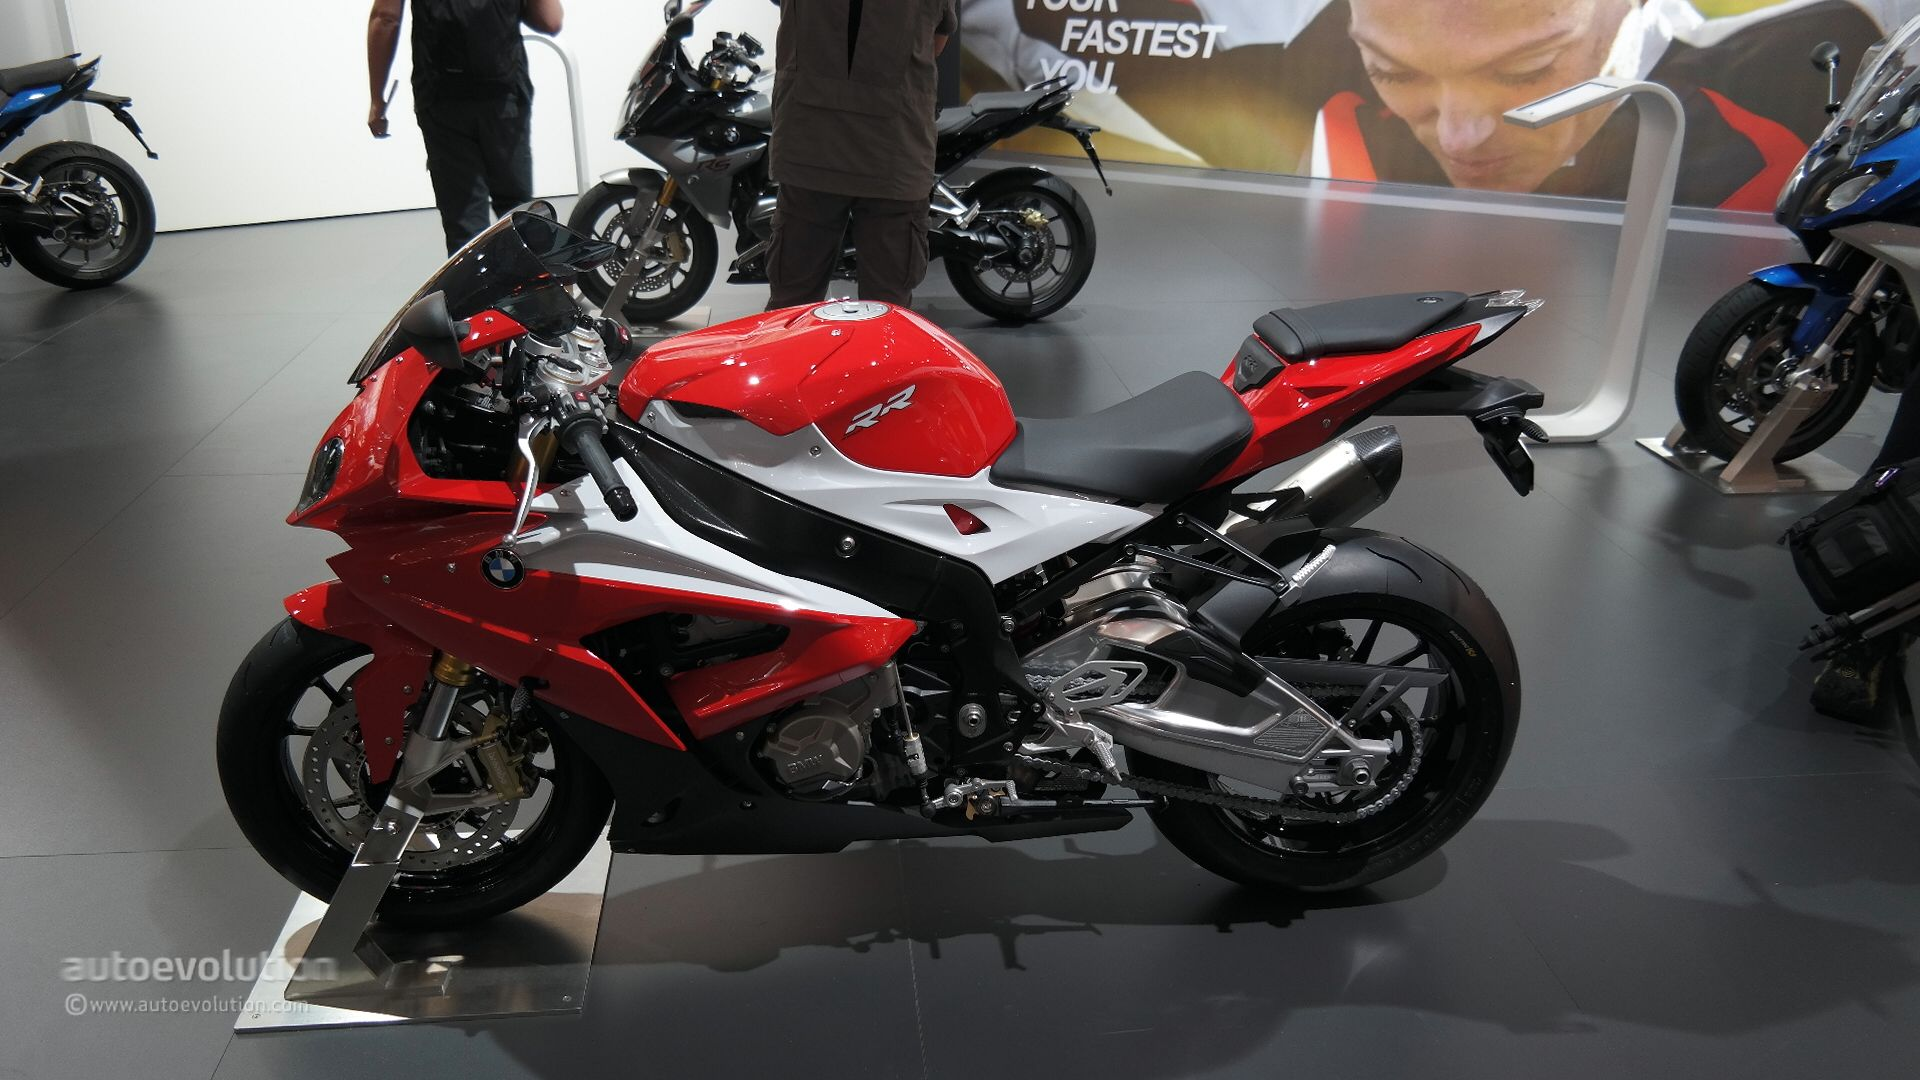 2015 Bmw S1000rr Brings More Power And An Akrapovic Muffler At Eicma